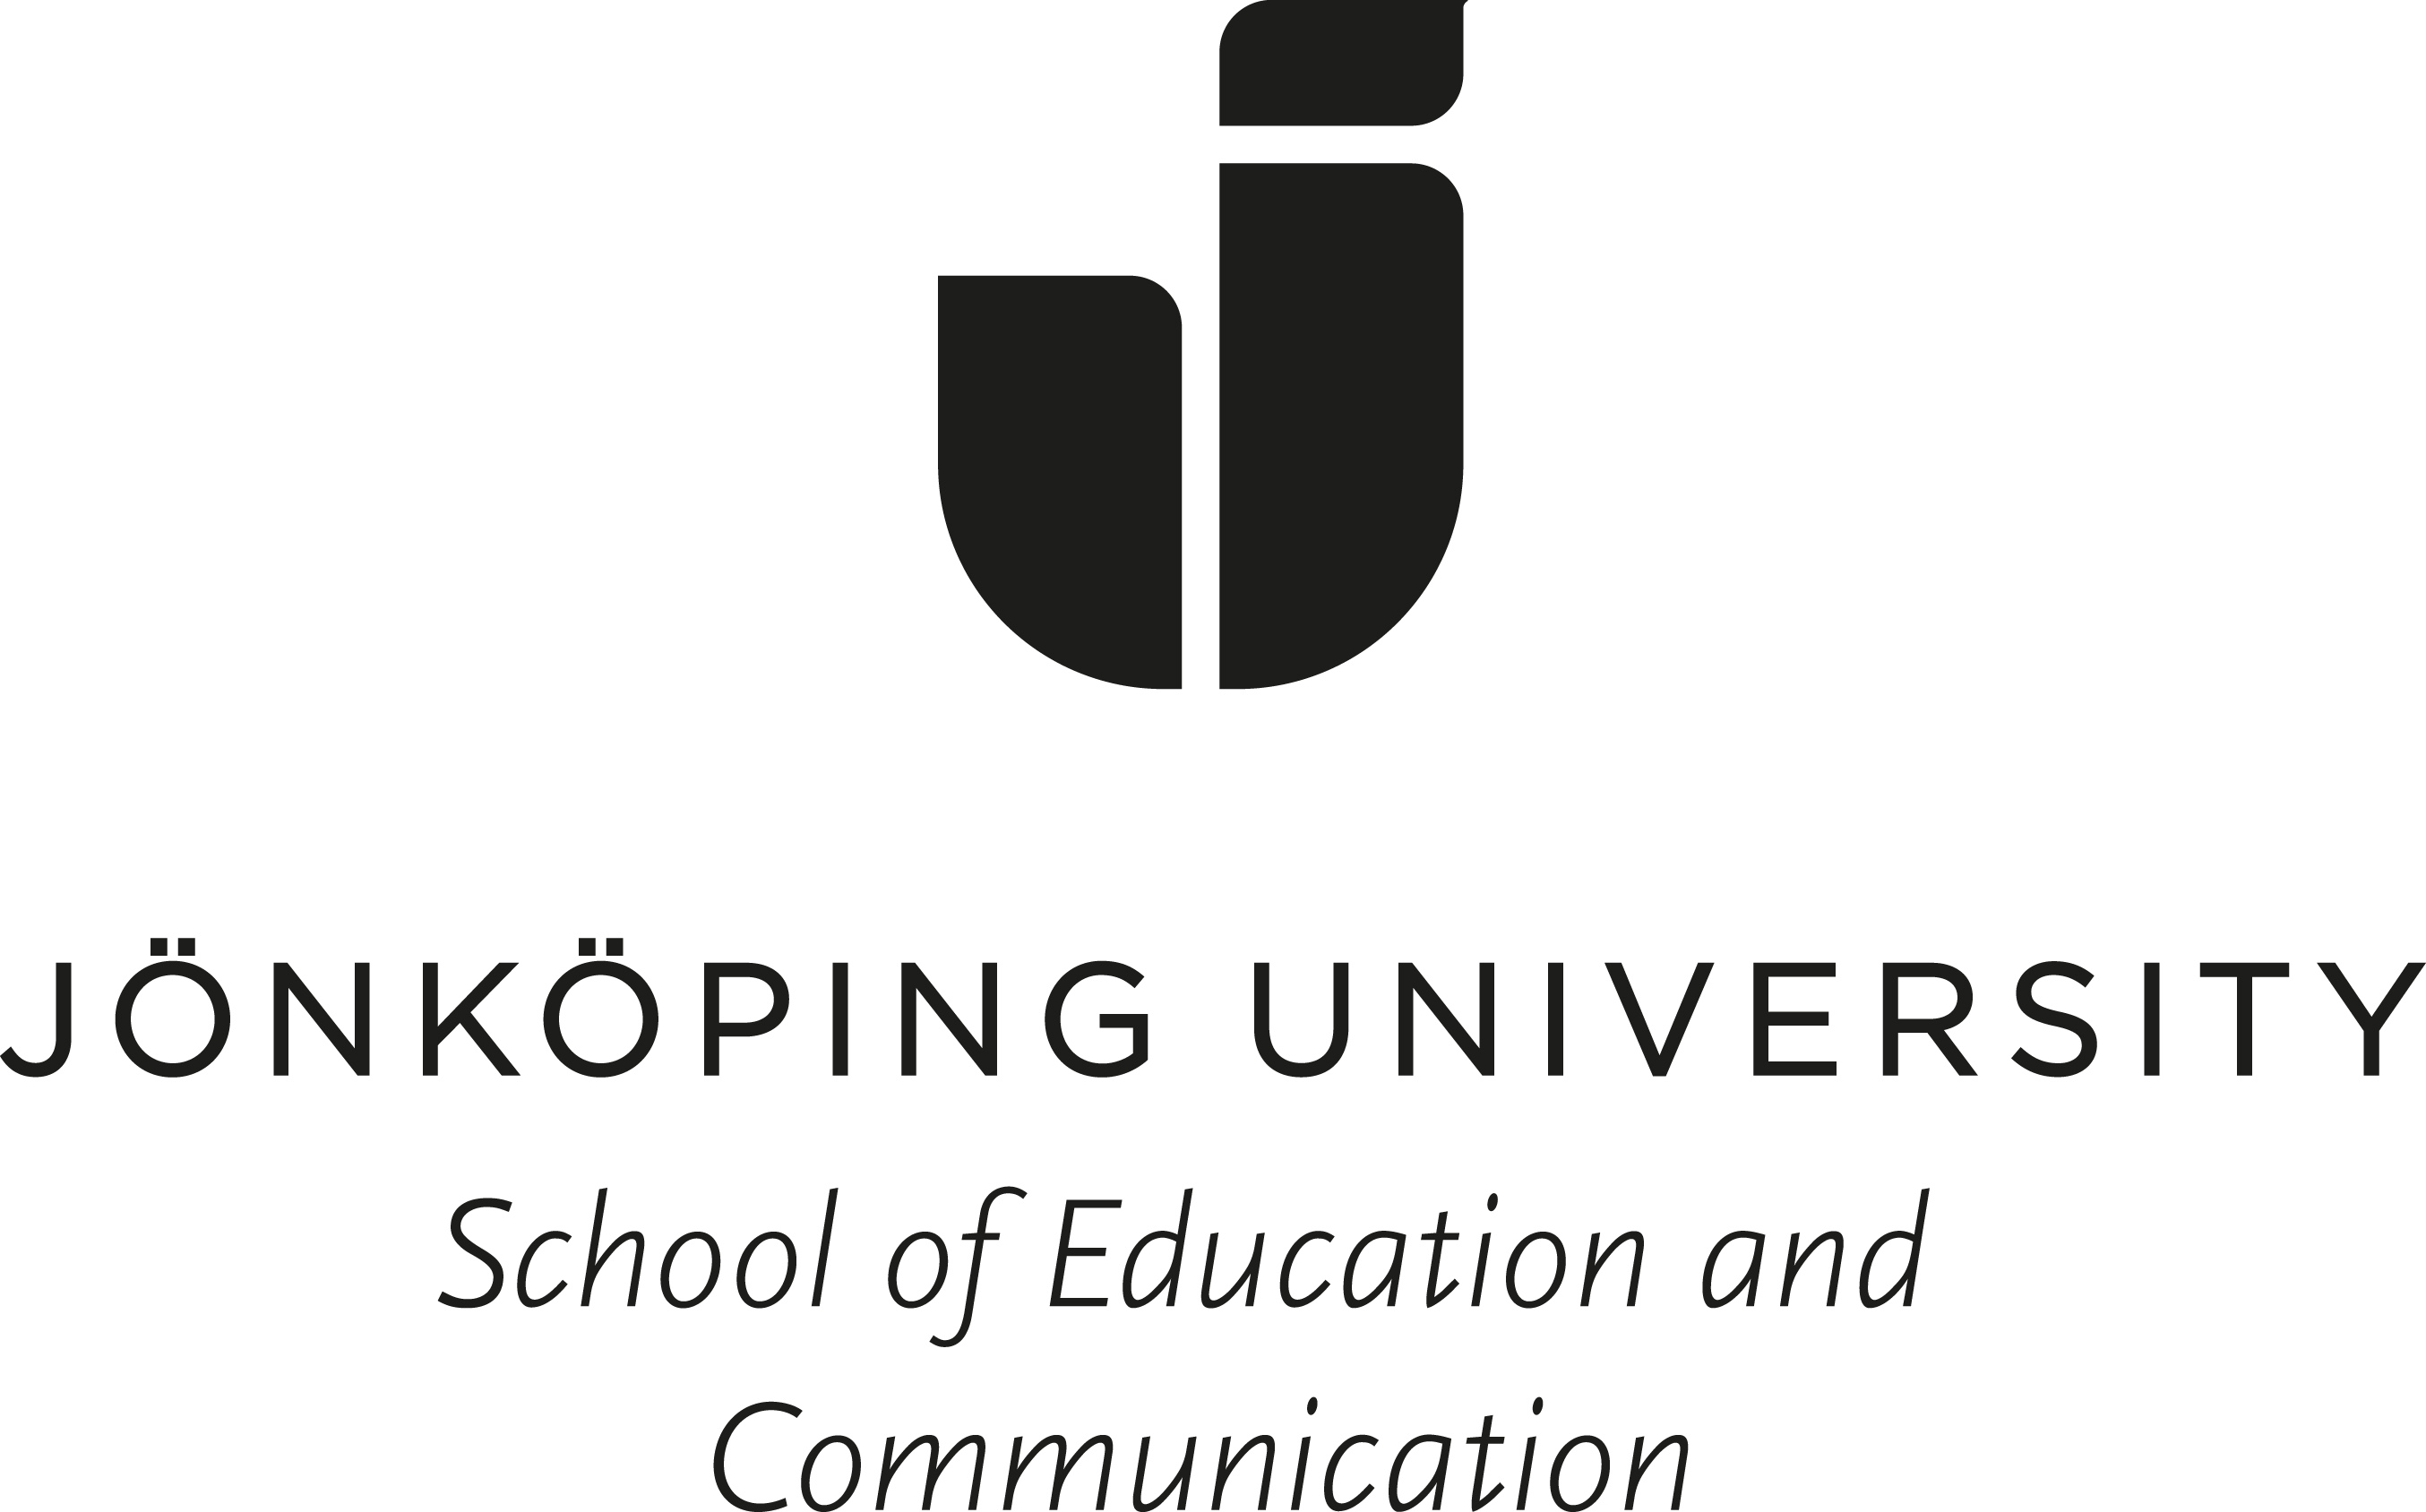 Jönköping University School of Education and Communication logotyp